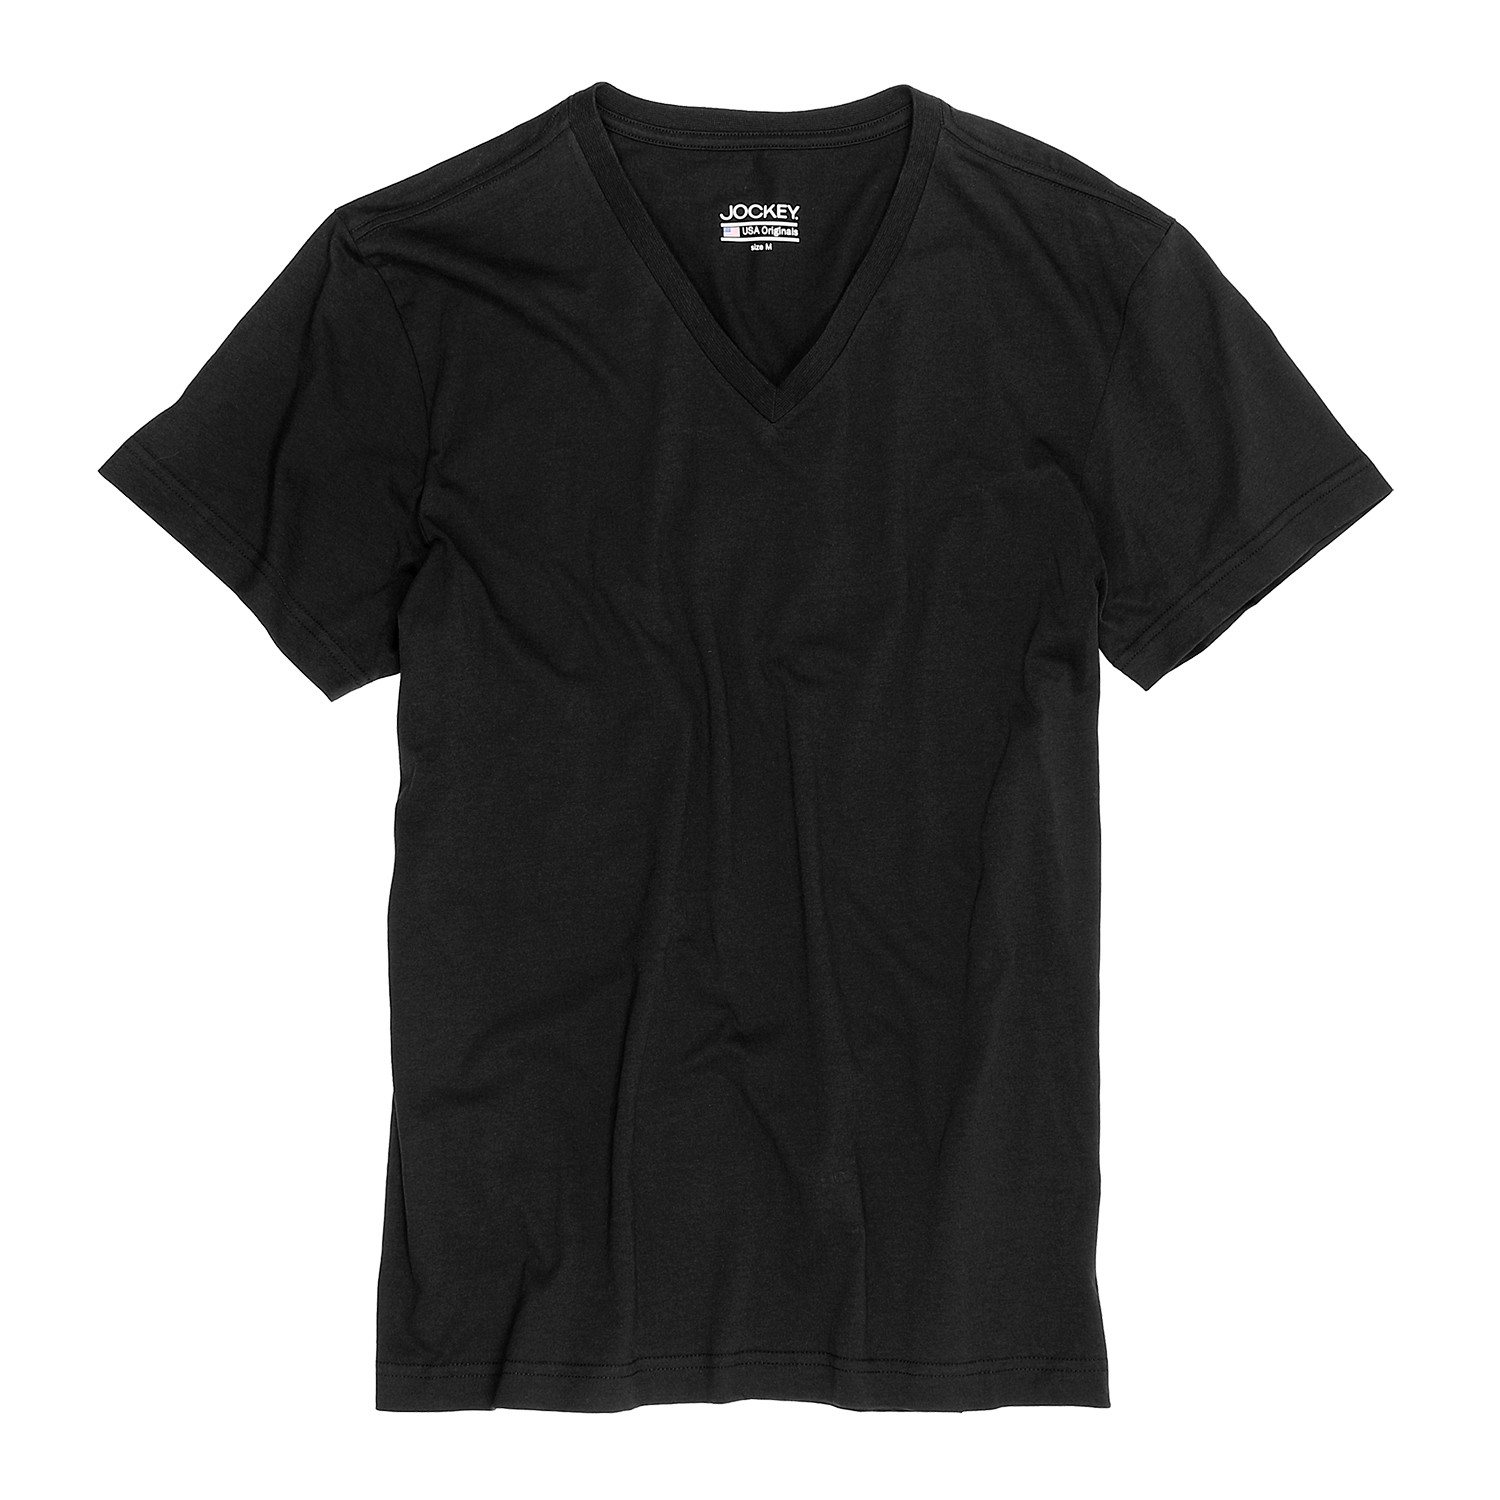 Detail Image to T-shirt double pack from Jockey in oversize until 6XL, black